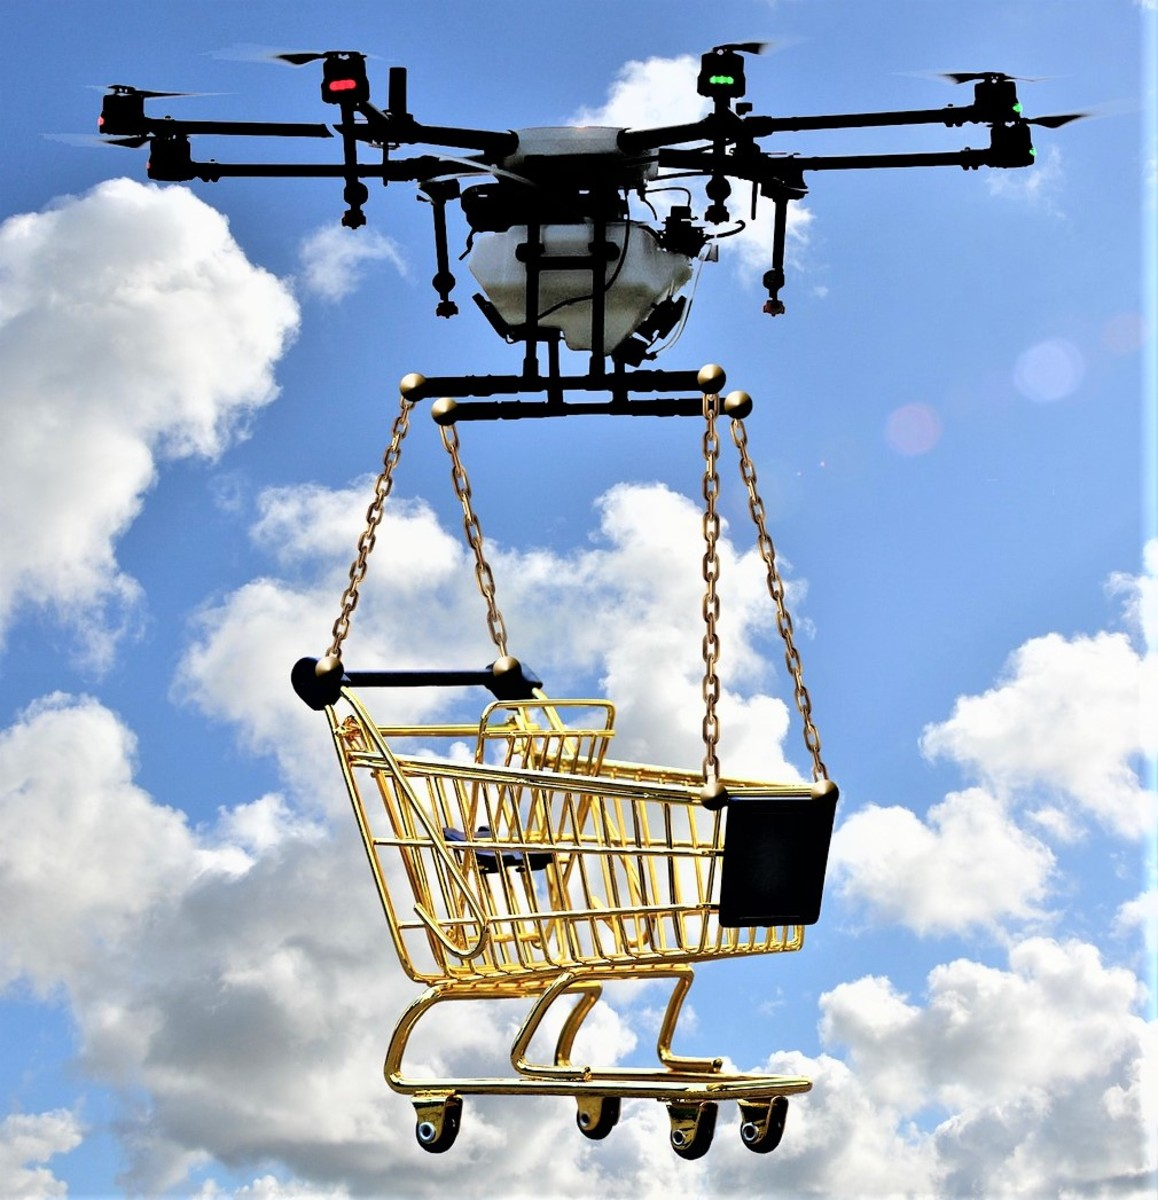 Amazon Prime Air: Instant Free Shipping With Delivery Drones